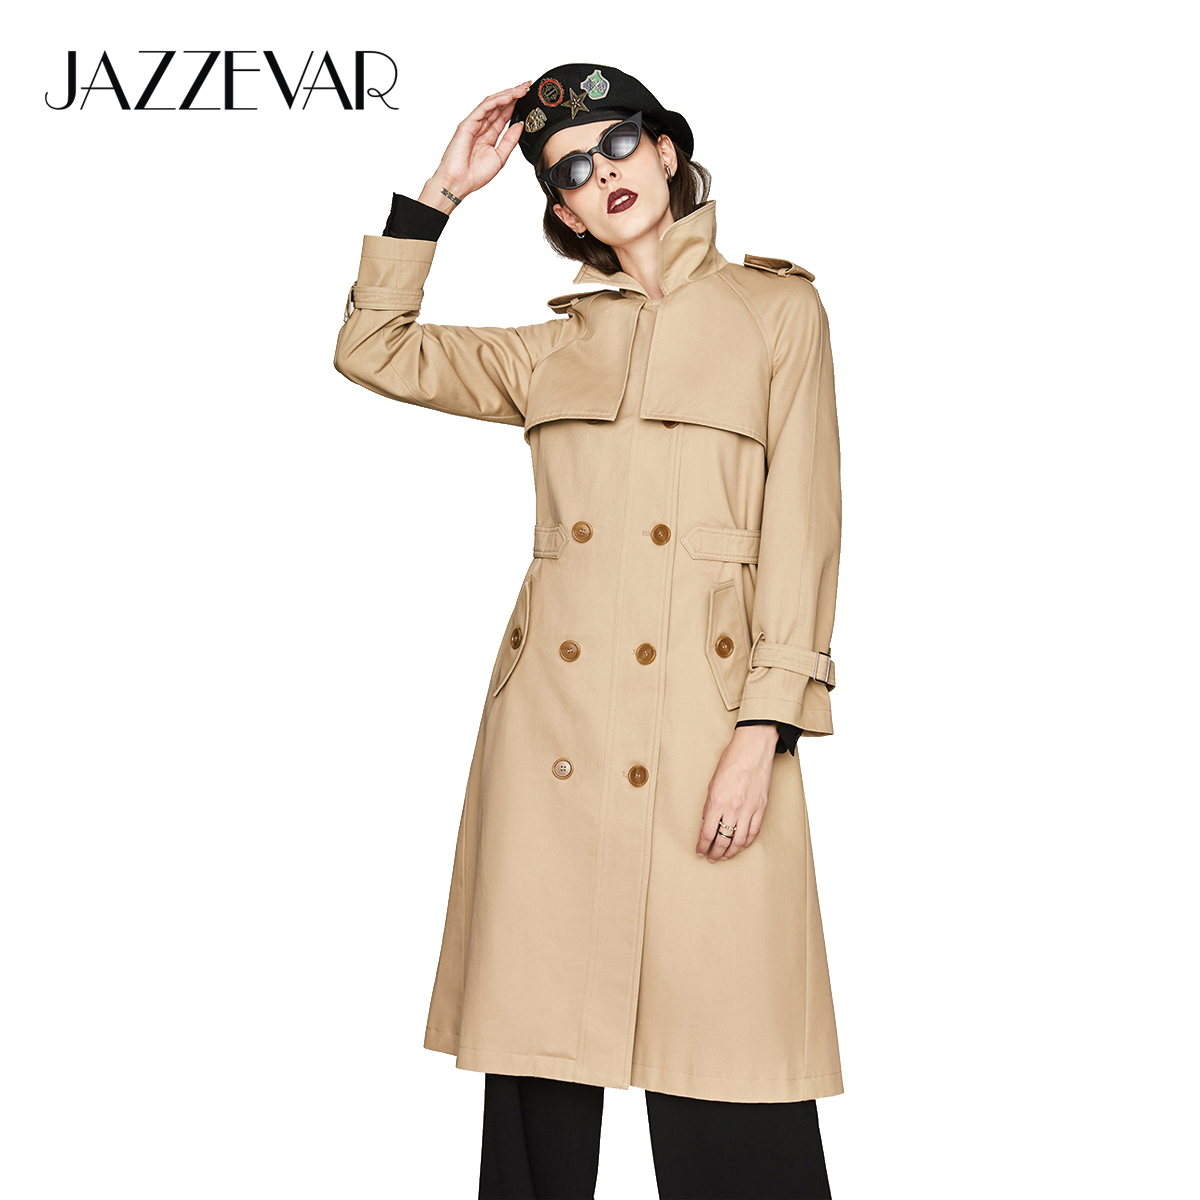 JAZZEVAR new 2019 Autumn Fashion Casual Women's Khaki Trench Coat Double Breasted Pleated Long Outerwear For Lady High Quality-in Trench from Women's Clothing    1